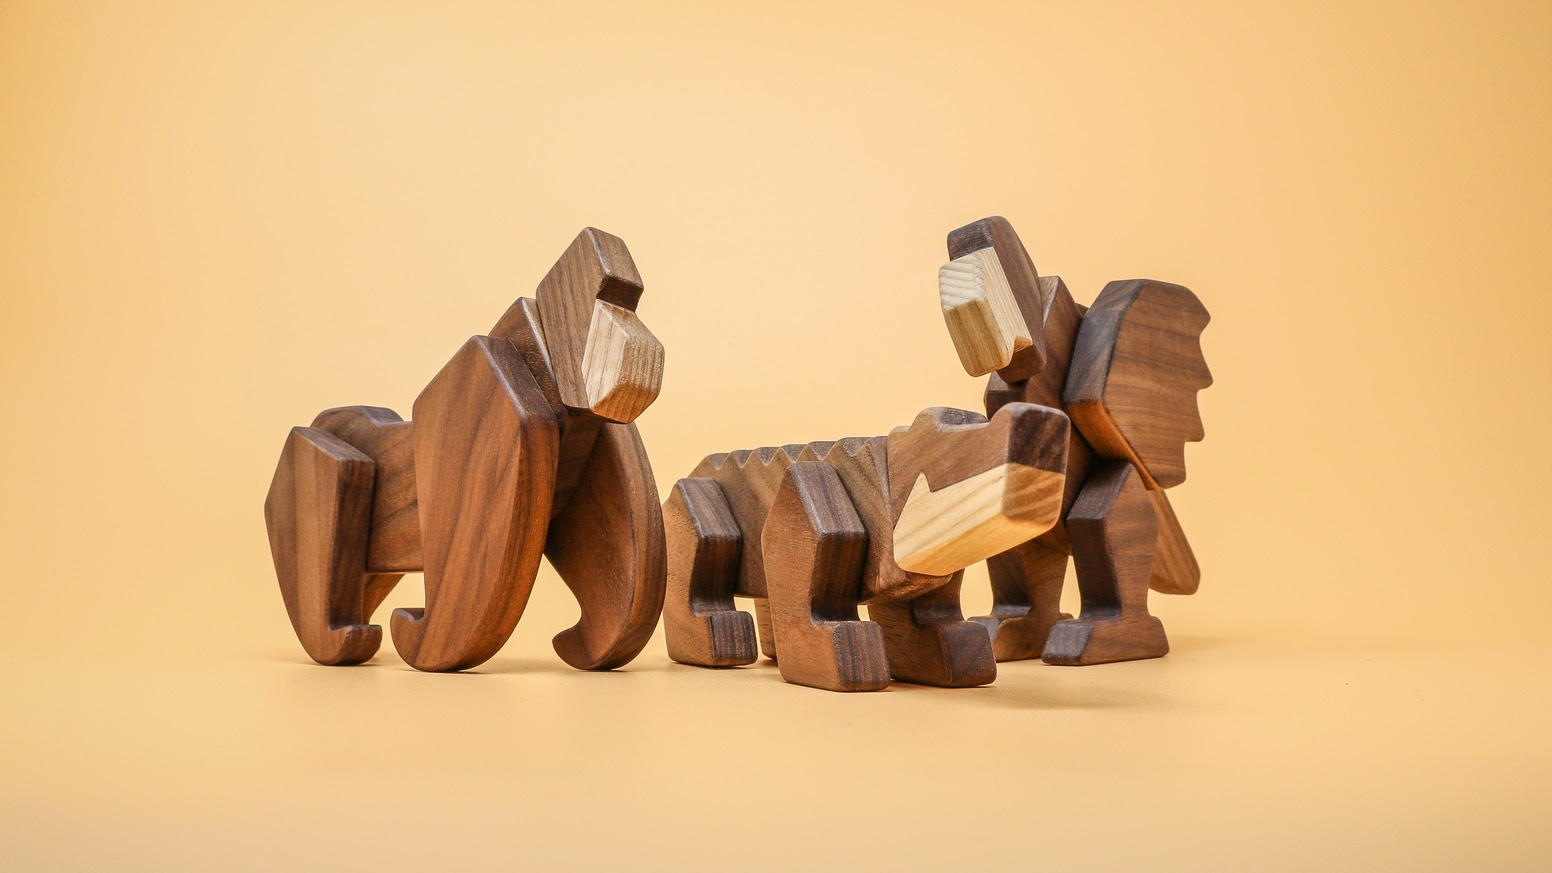 3 quality magnetic wooden animals you can assemble & reassemble to build anything you can imagine! For creative kids & playful adults!